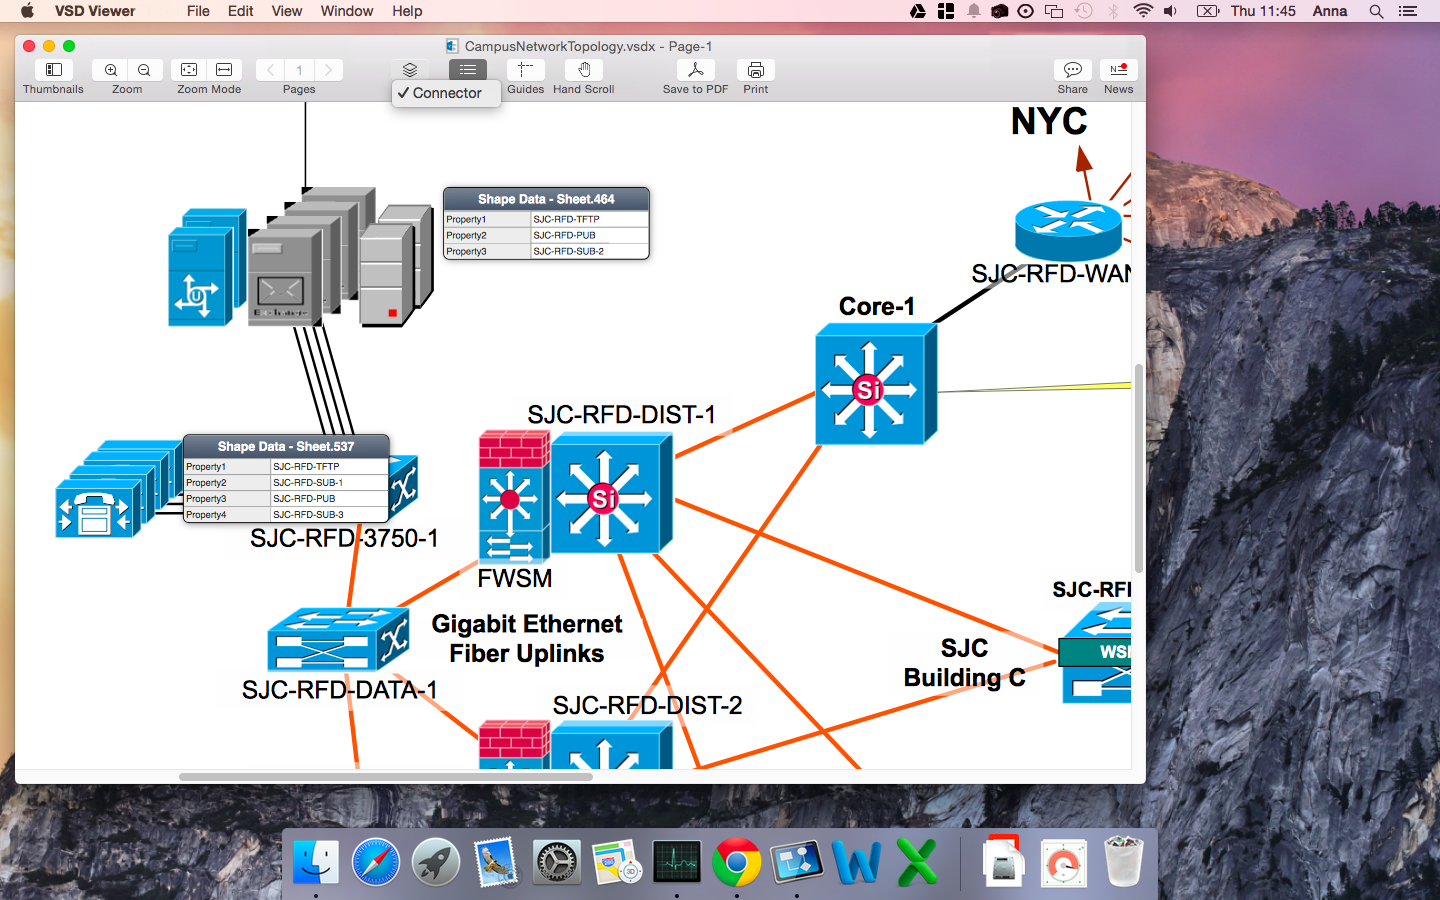 open visio on os x yosemite - Edit Vsd Files Without Visio